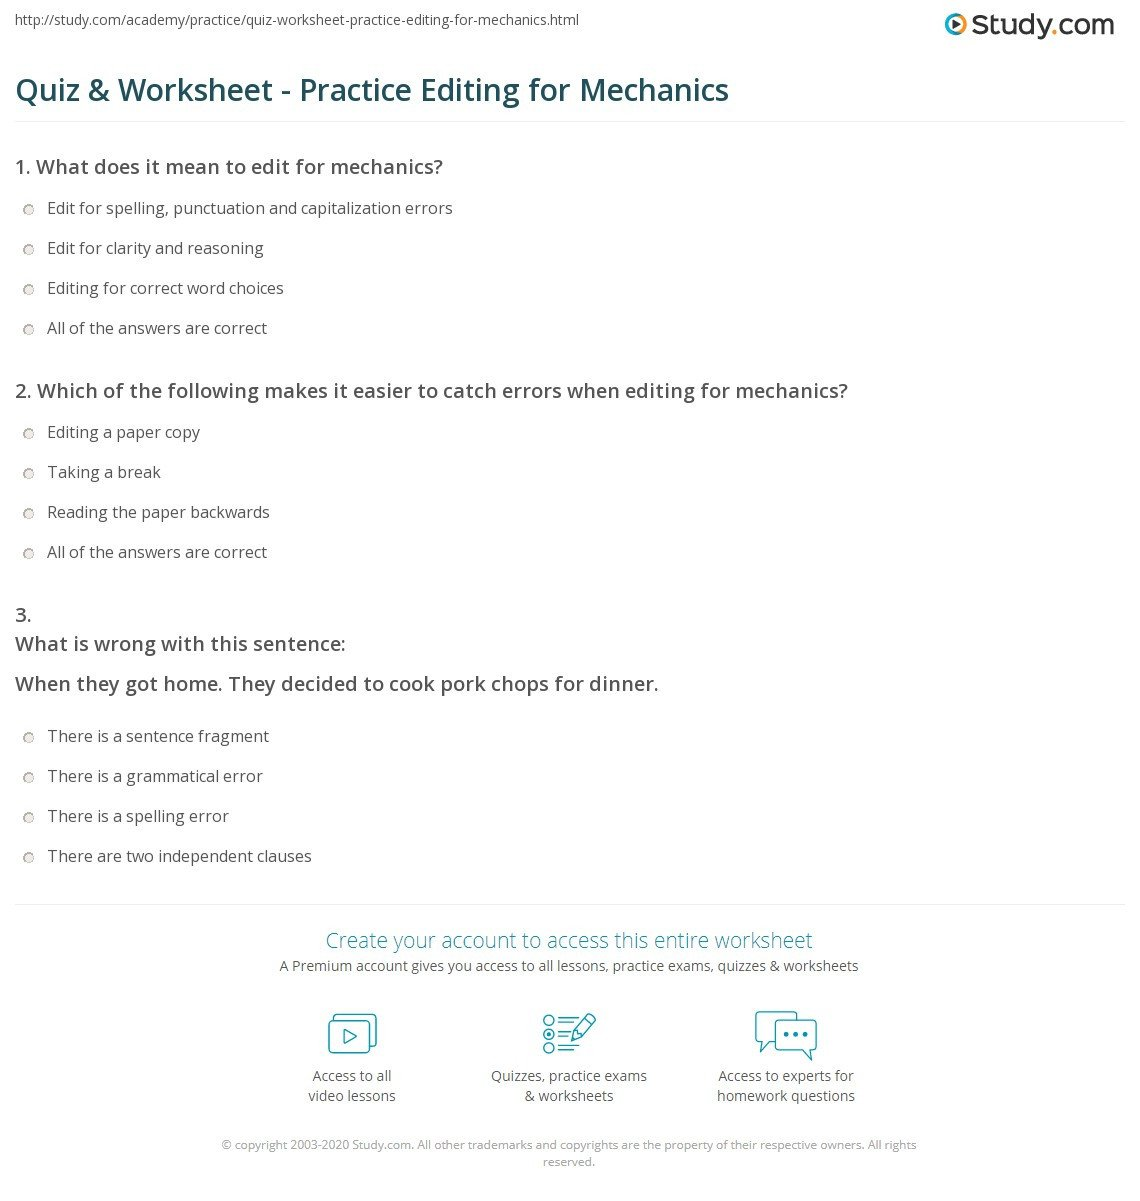 quiz worksheet practice editing for mechanics study